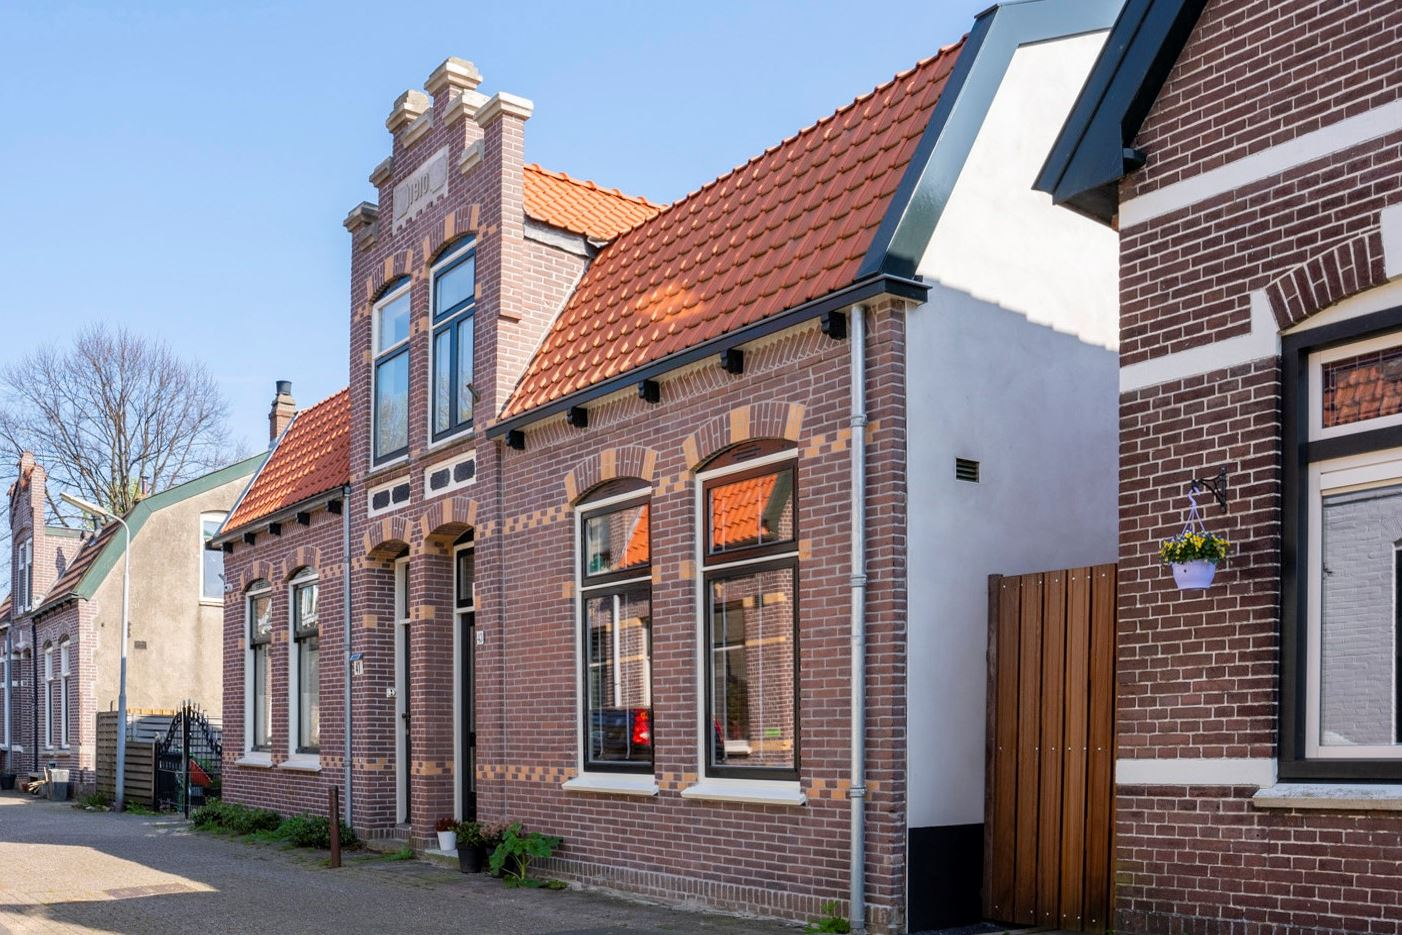 View photo 1 of Parkstraat 43